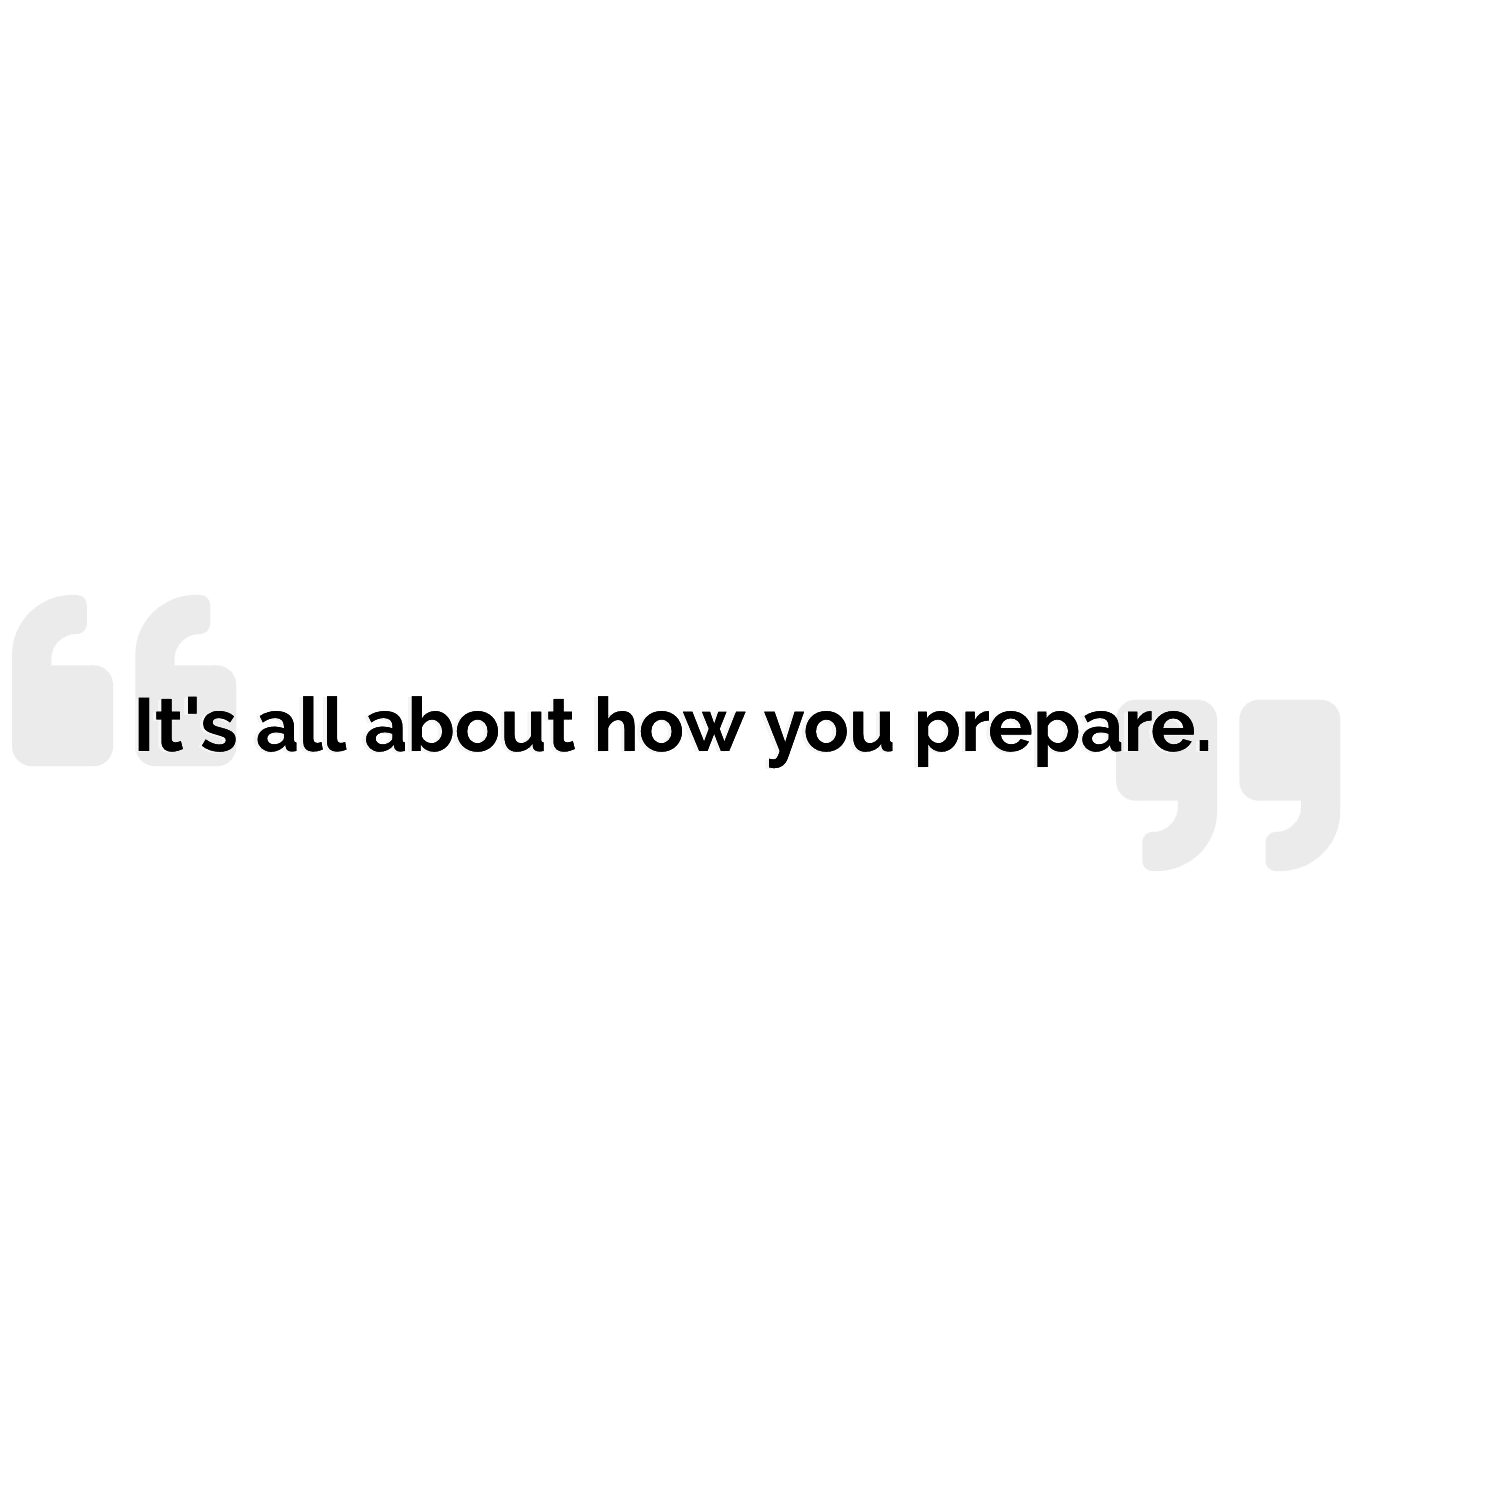 quote - it's all about how you prepare